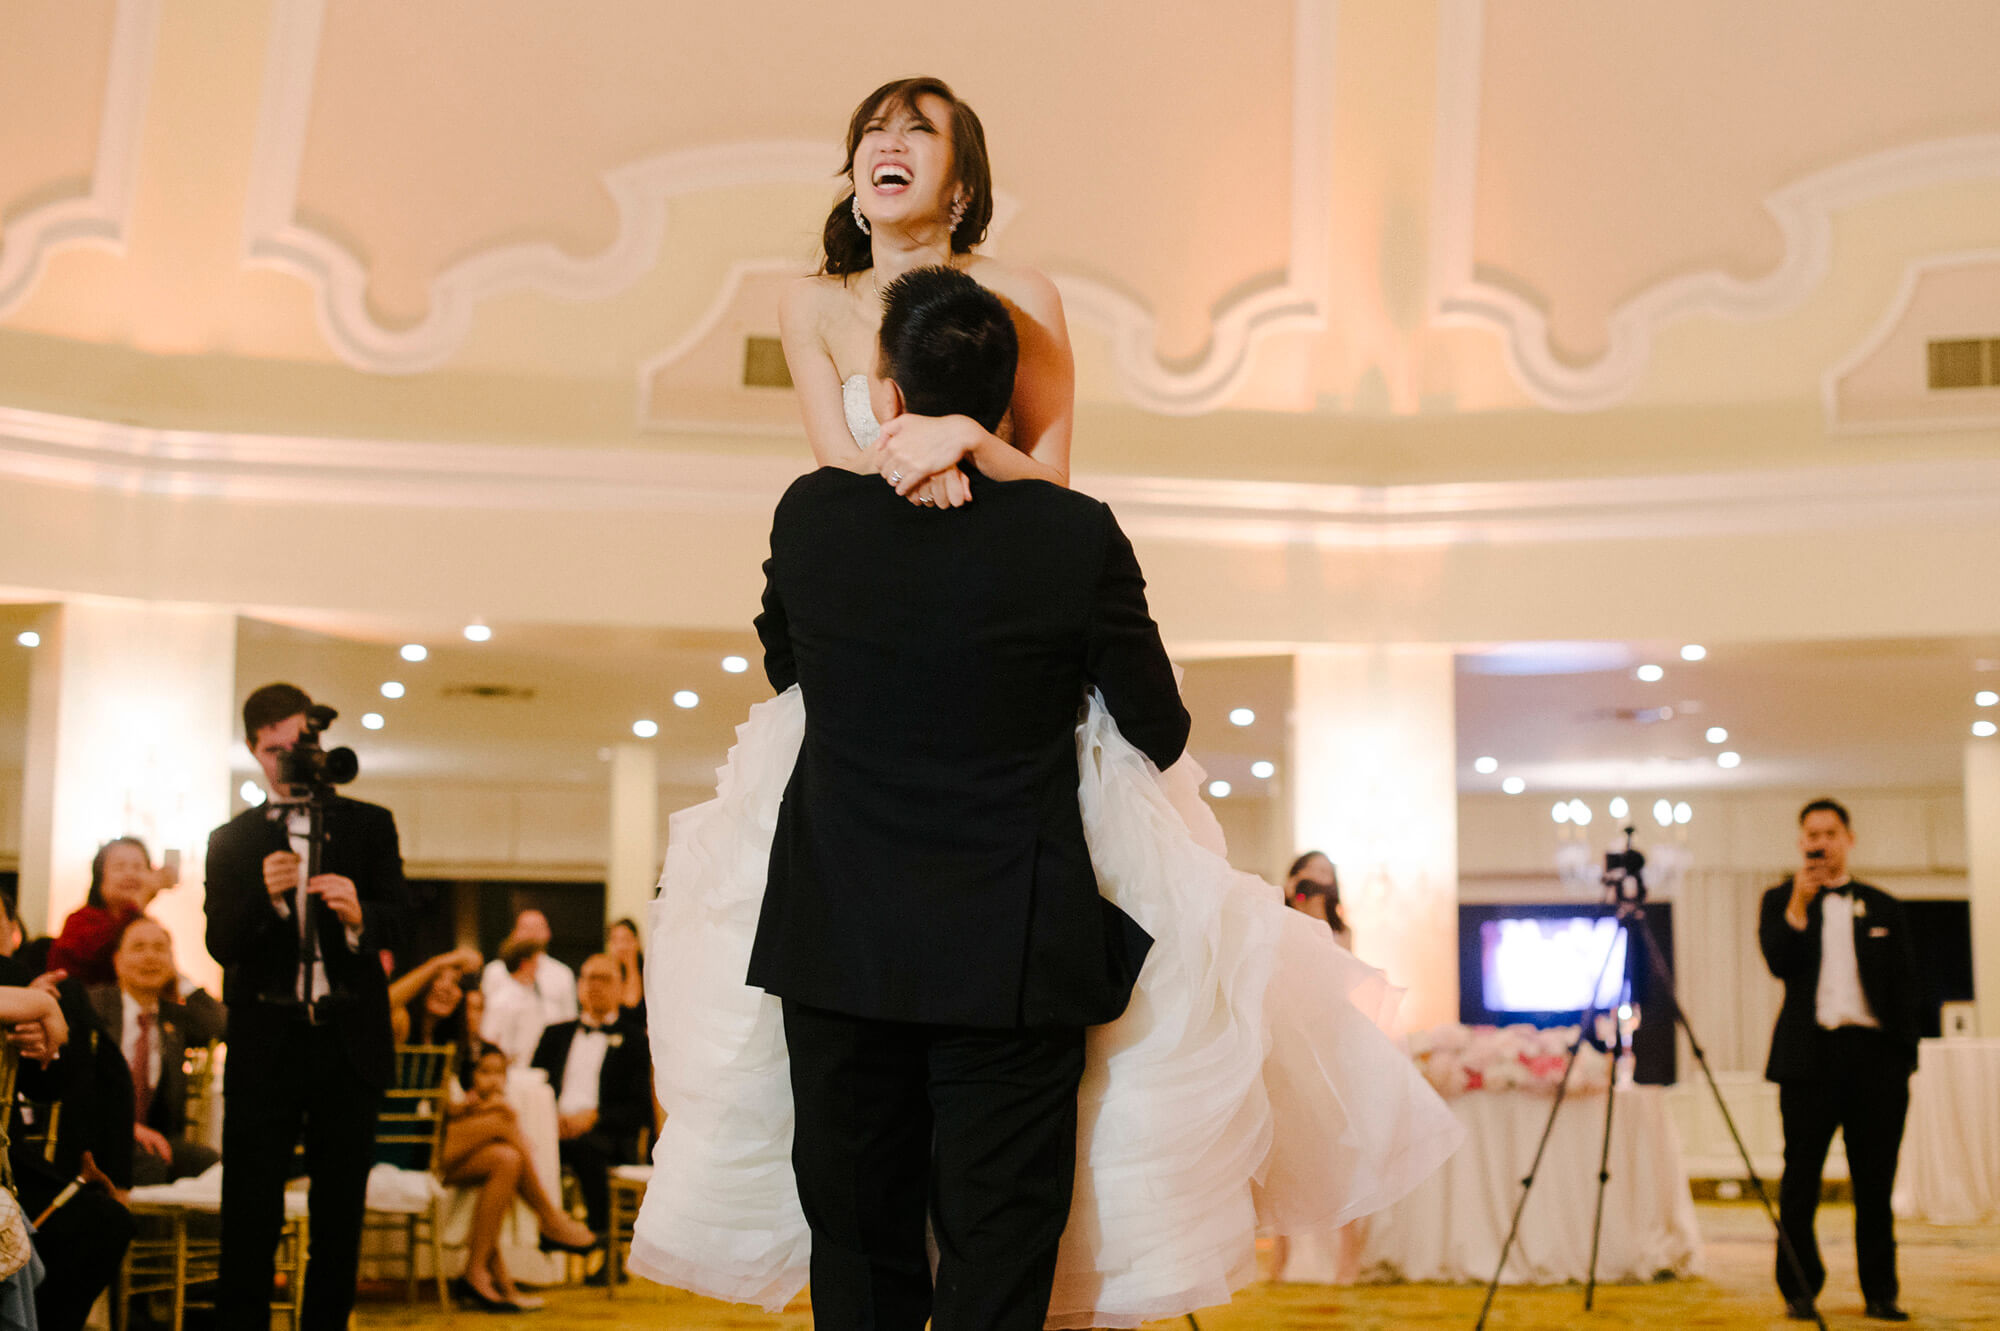 groom lifts bride in air first dance